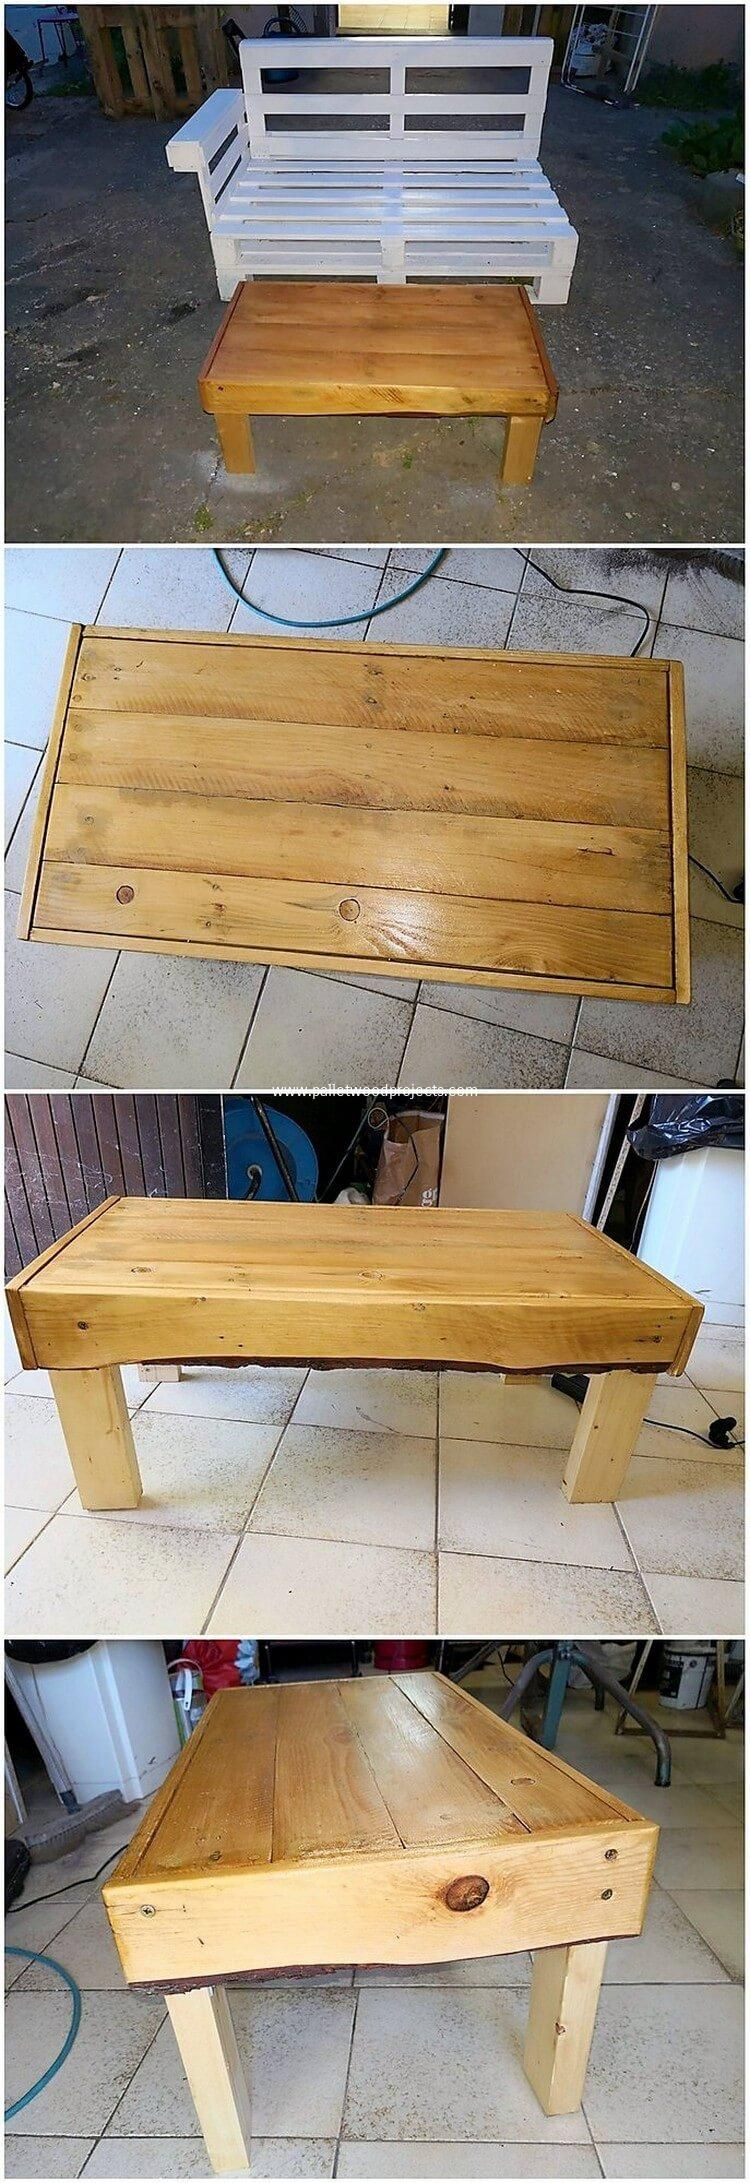 marvelous diy ideas for recycling old wood pallets wood on extraordinary ideas for old used dumped pallets wood id=13898